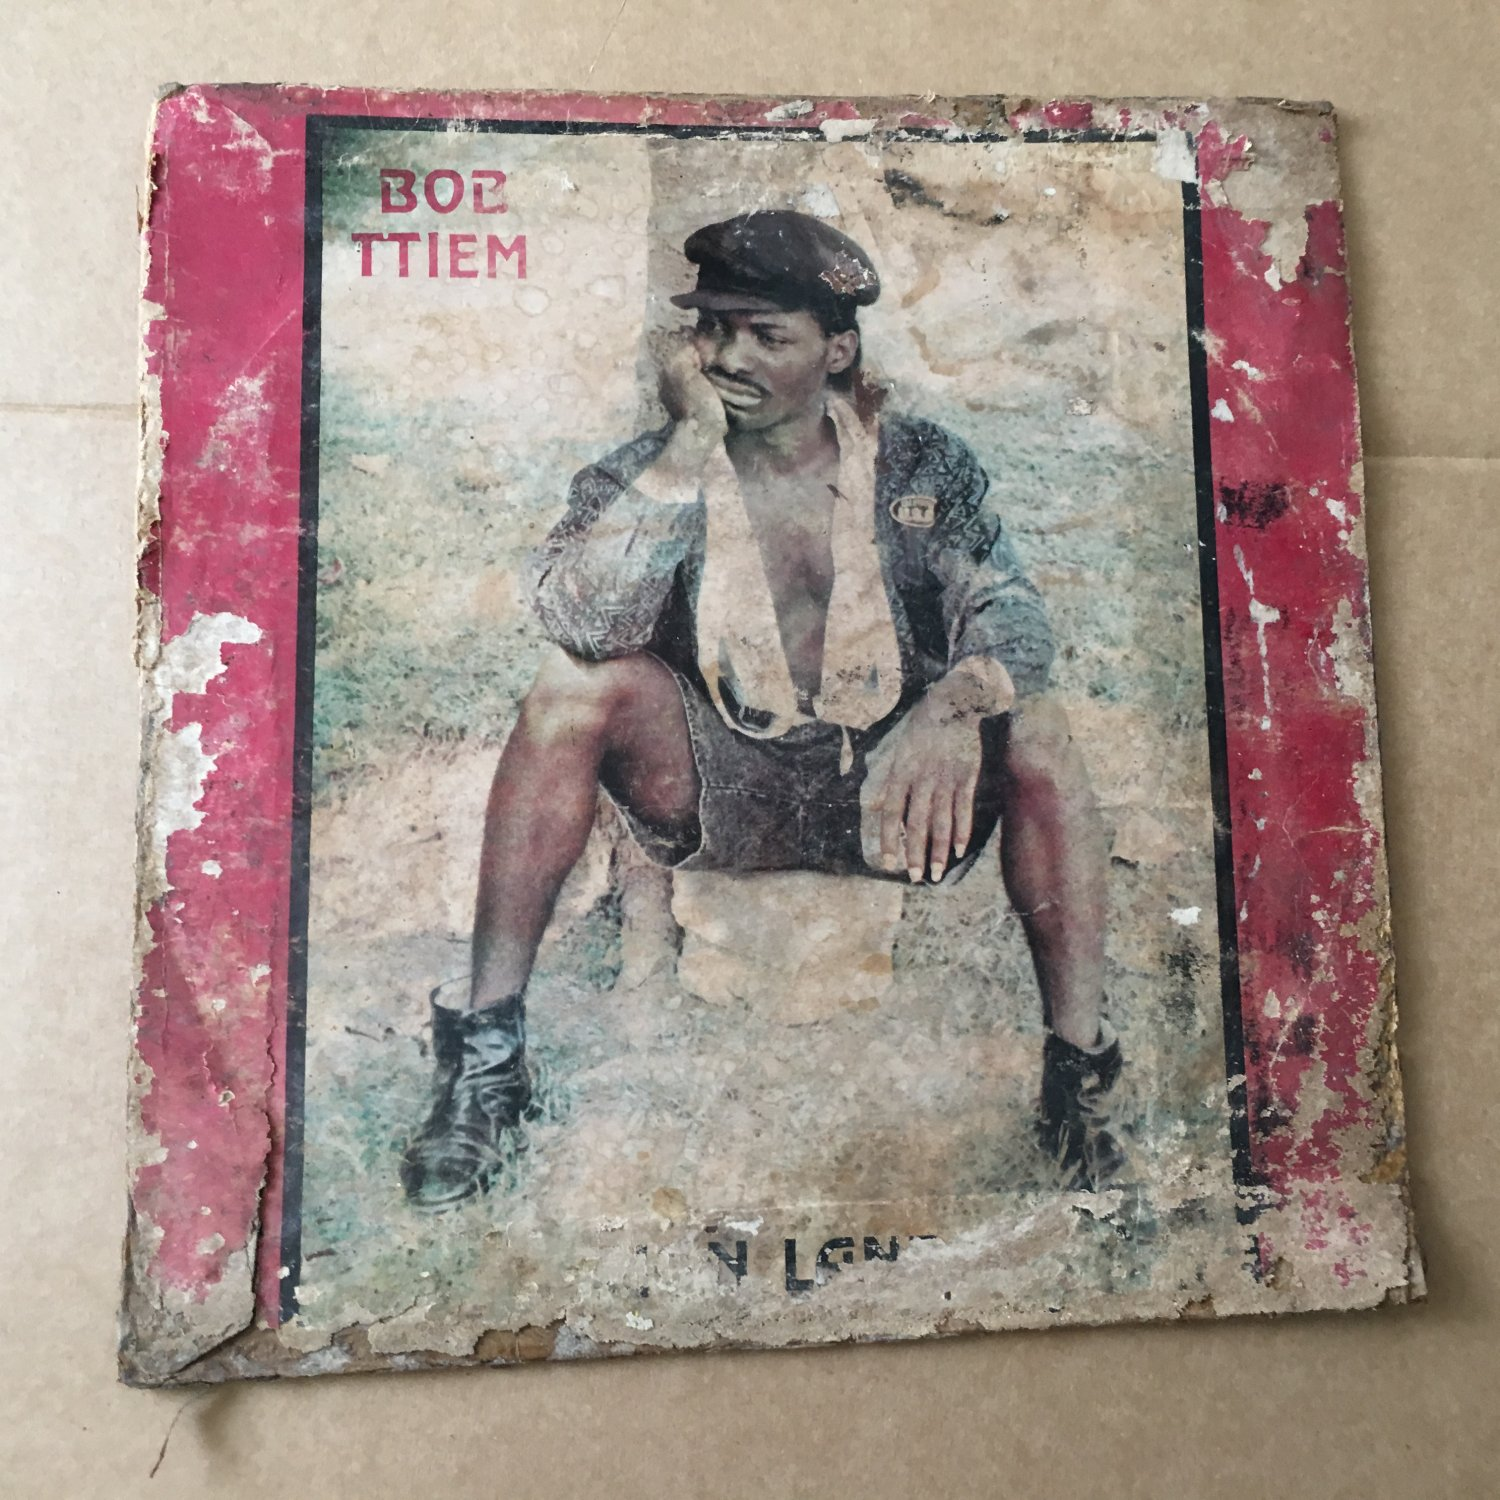 DE ROCKS led by BOB TTIEM LP zion land RARE NIGERIA REGGAE mp3 LISTEN